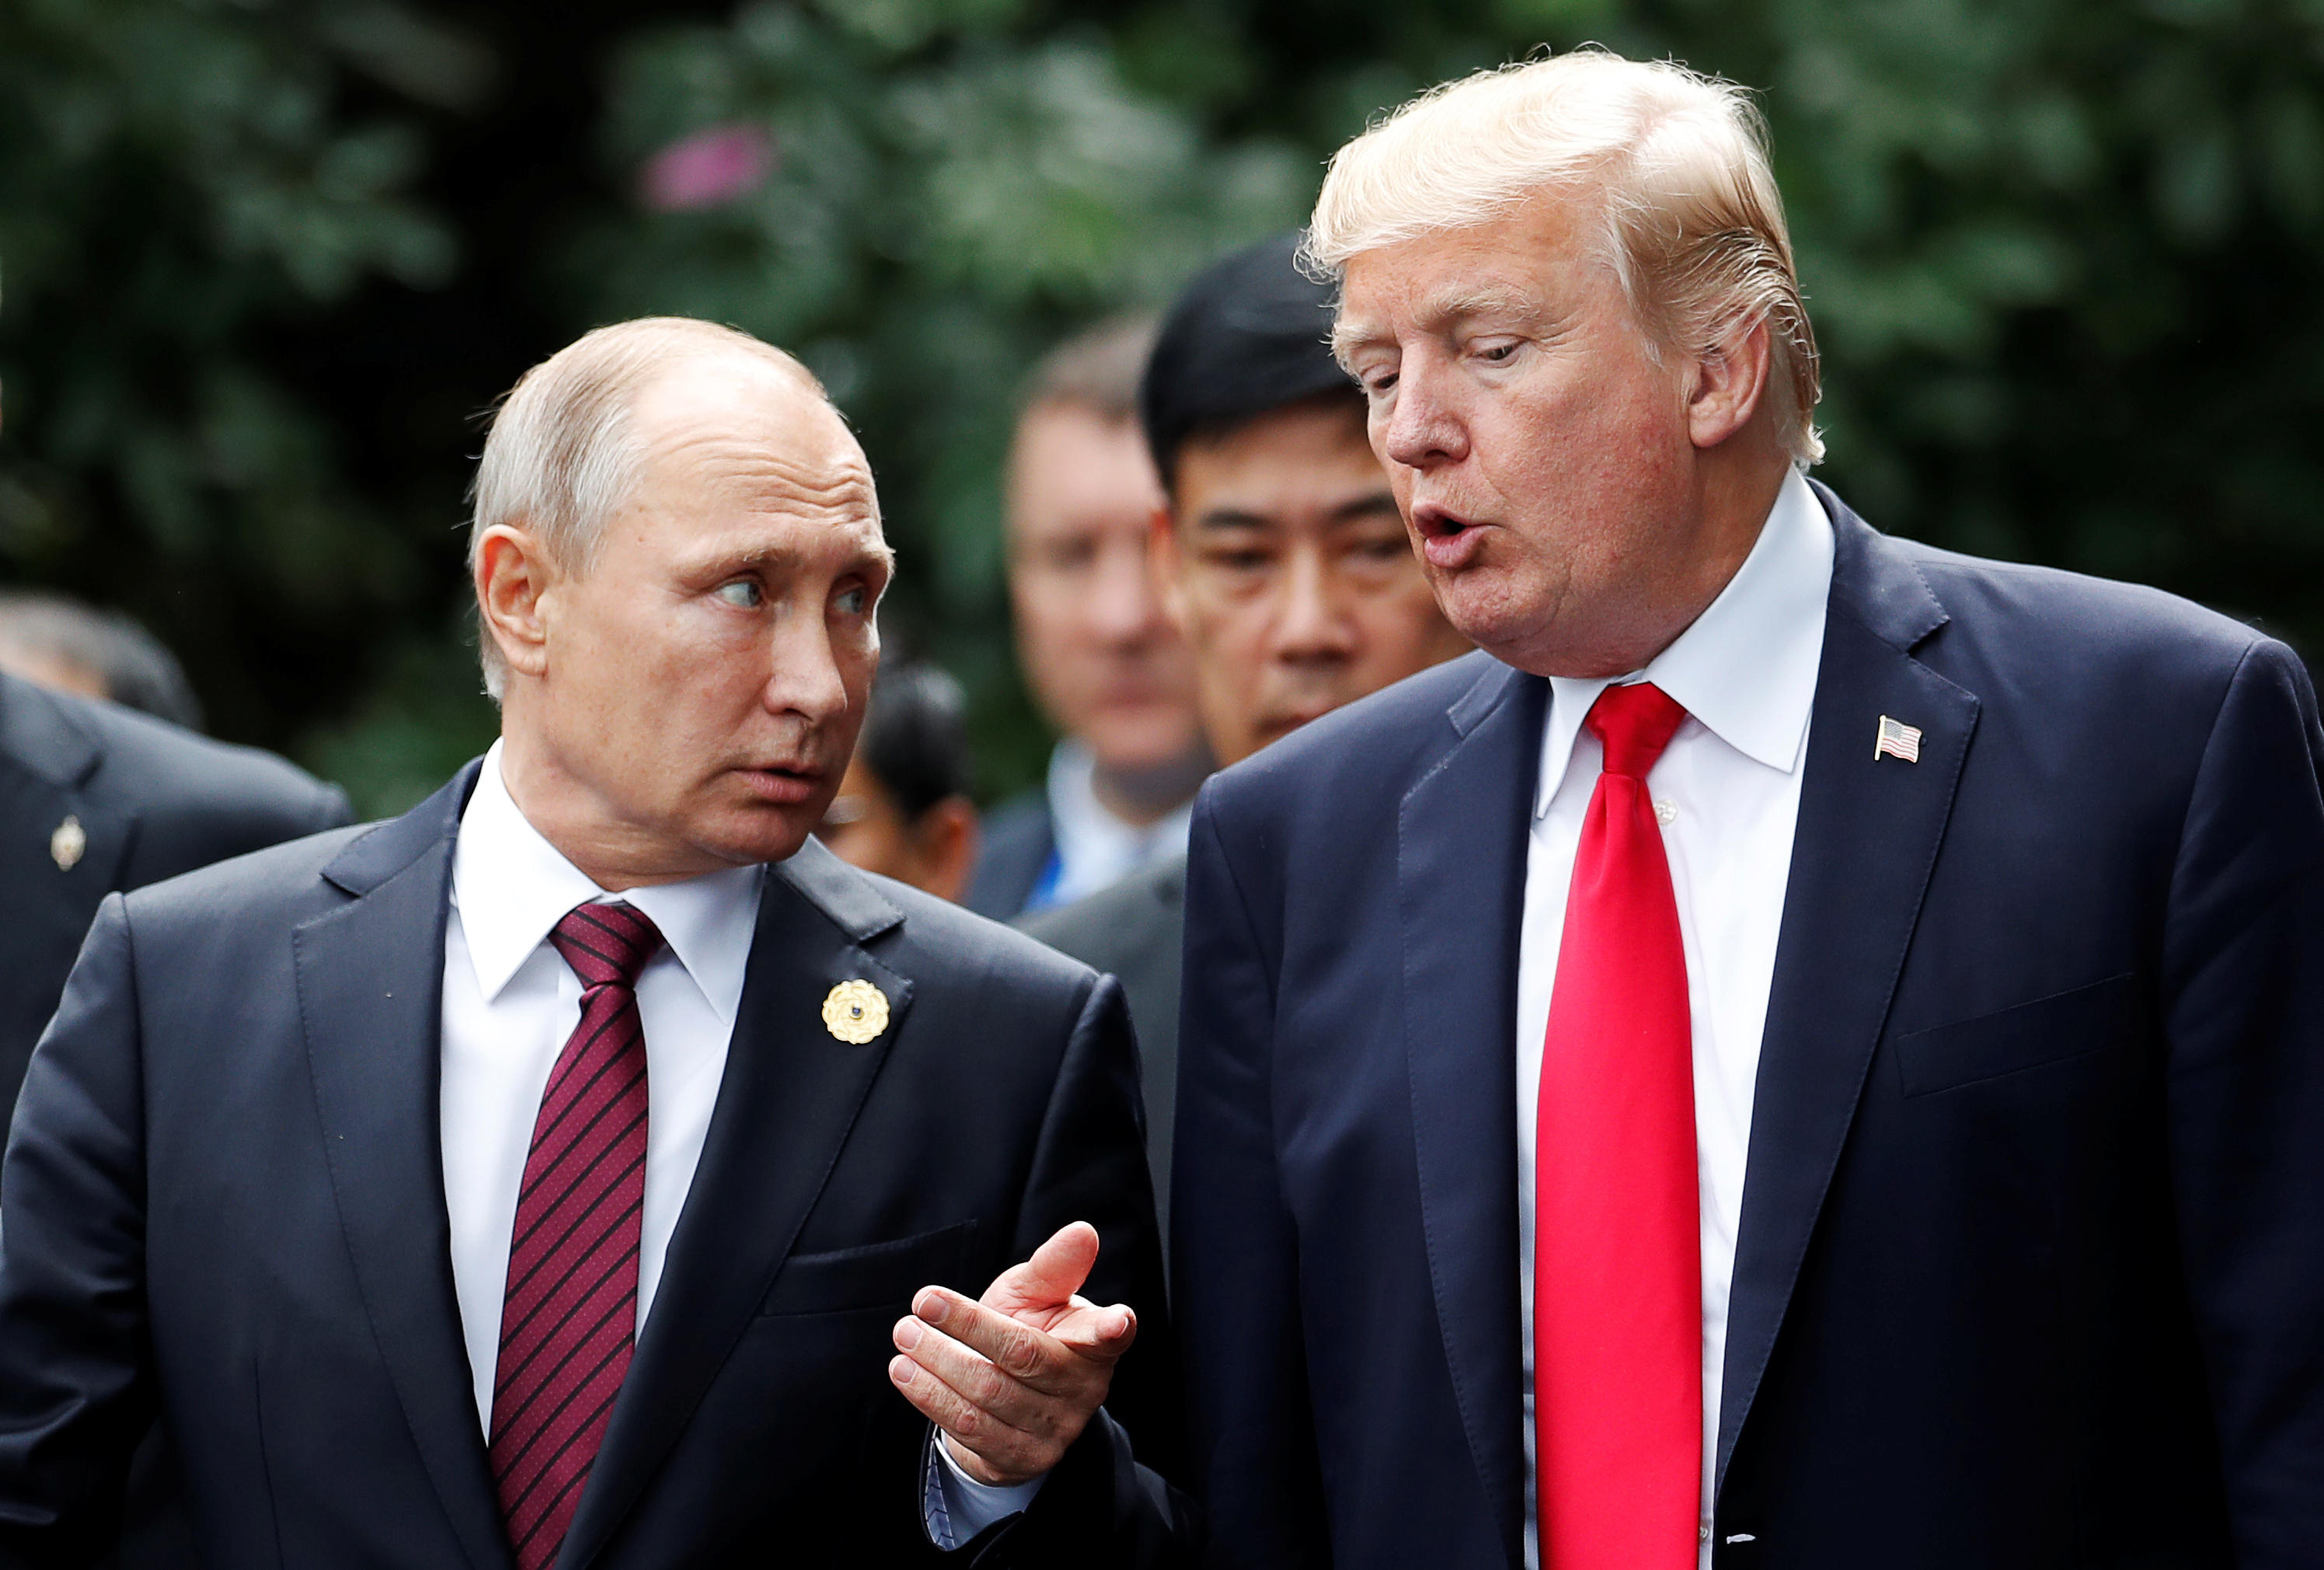 Trump spoke to Putin about Syria, North Korea, other hot spots